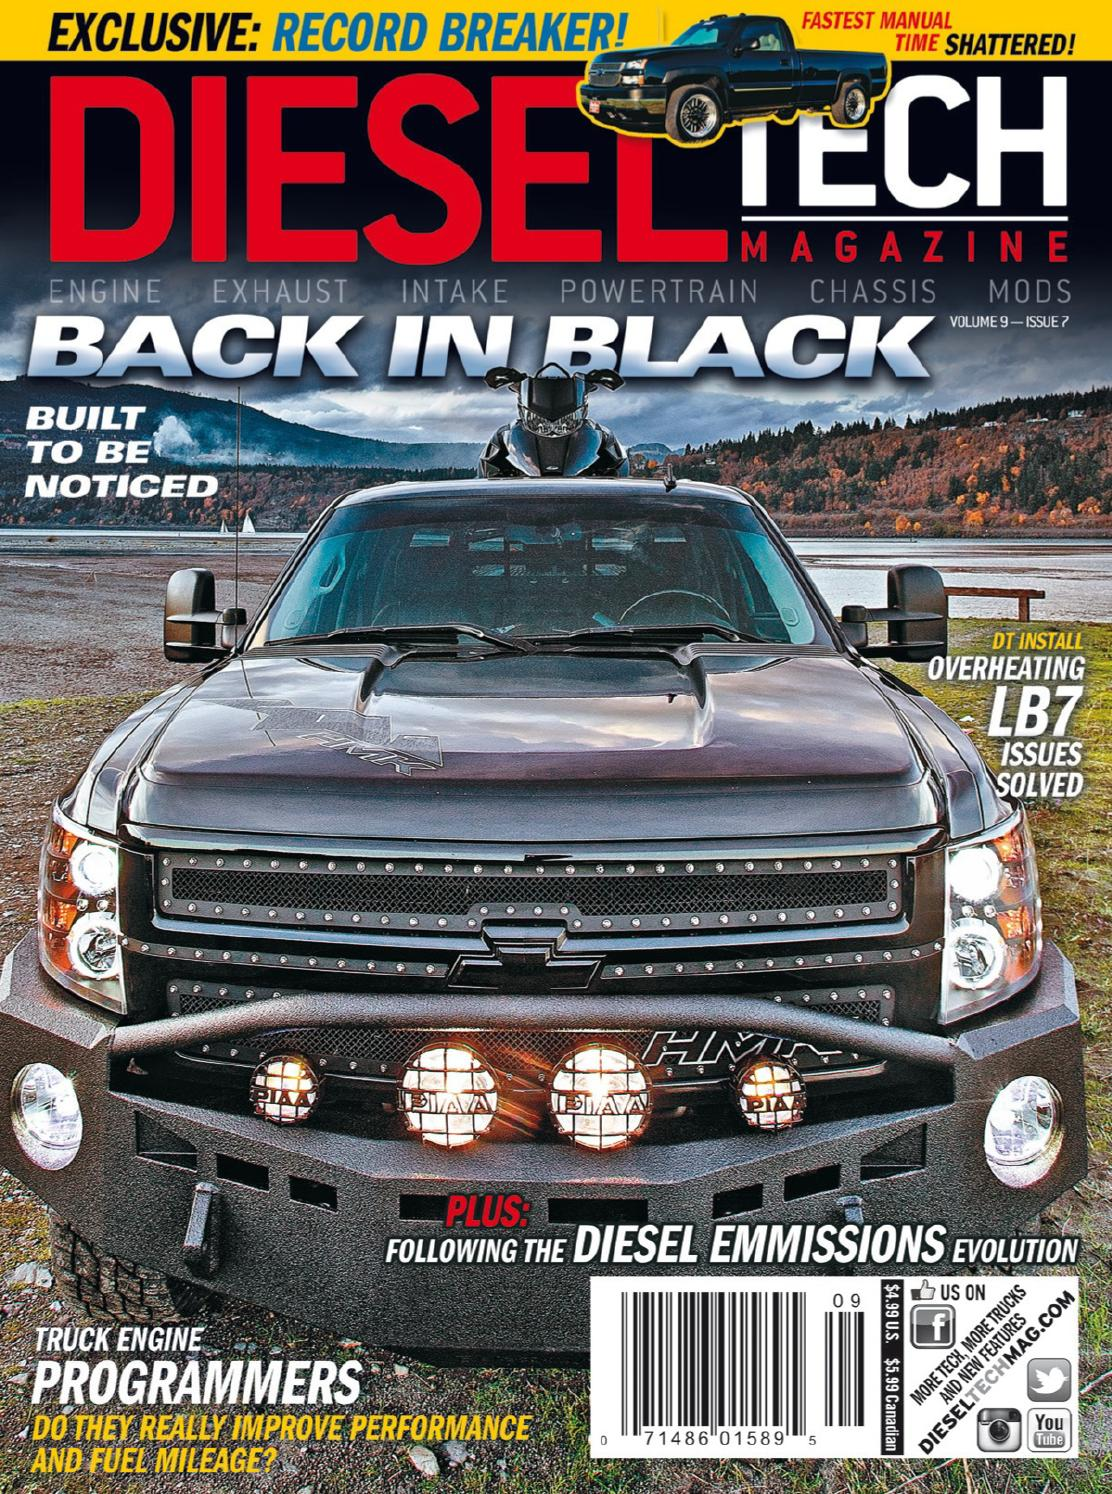 Diesel tech magazine 2014 09 by Kevin Huynh - issuu